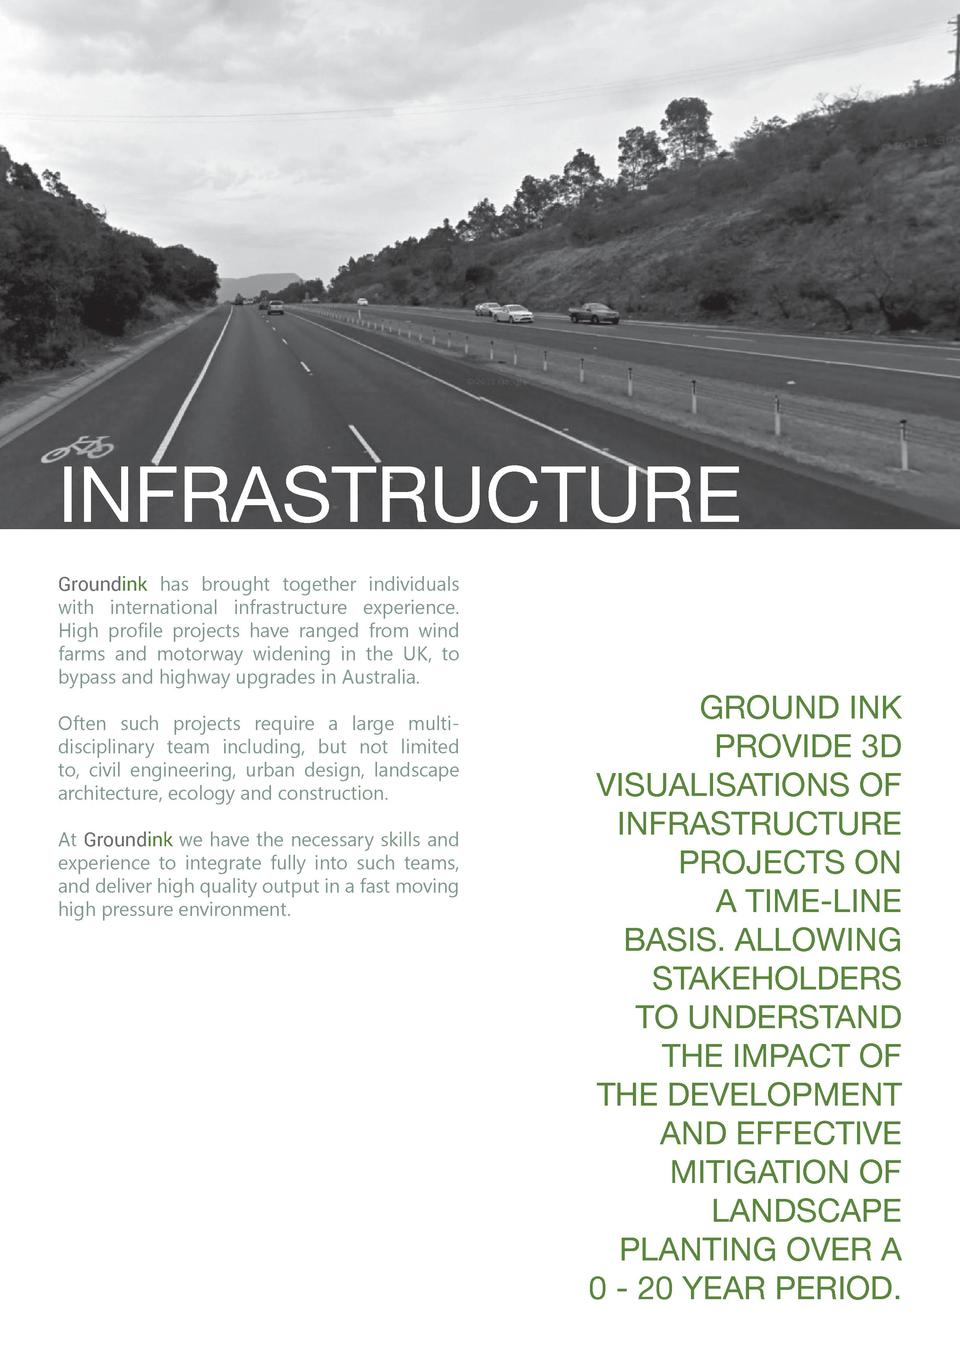 INFRASTRUCTURE Groundink has brought together individuals with international infrastructure experience. High profile proje...